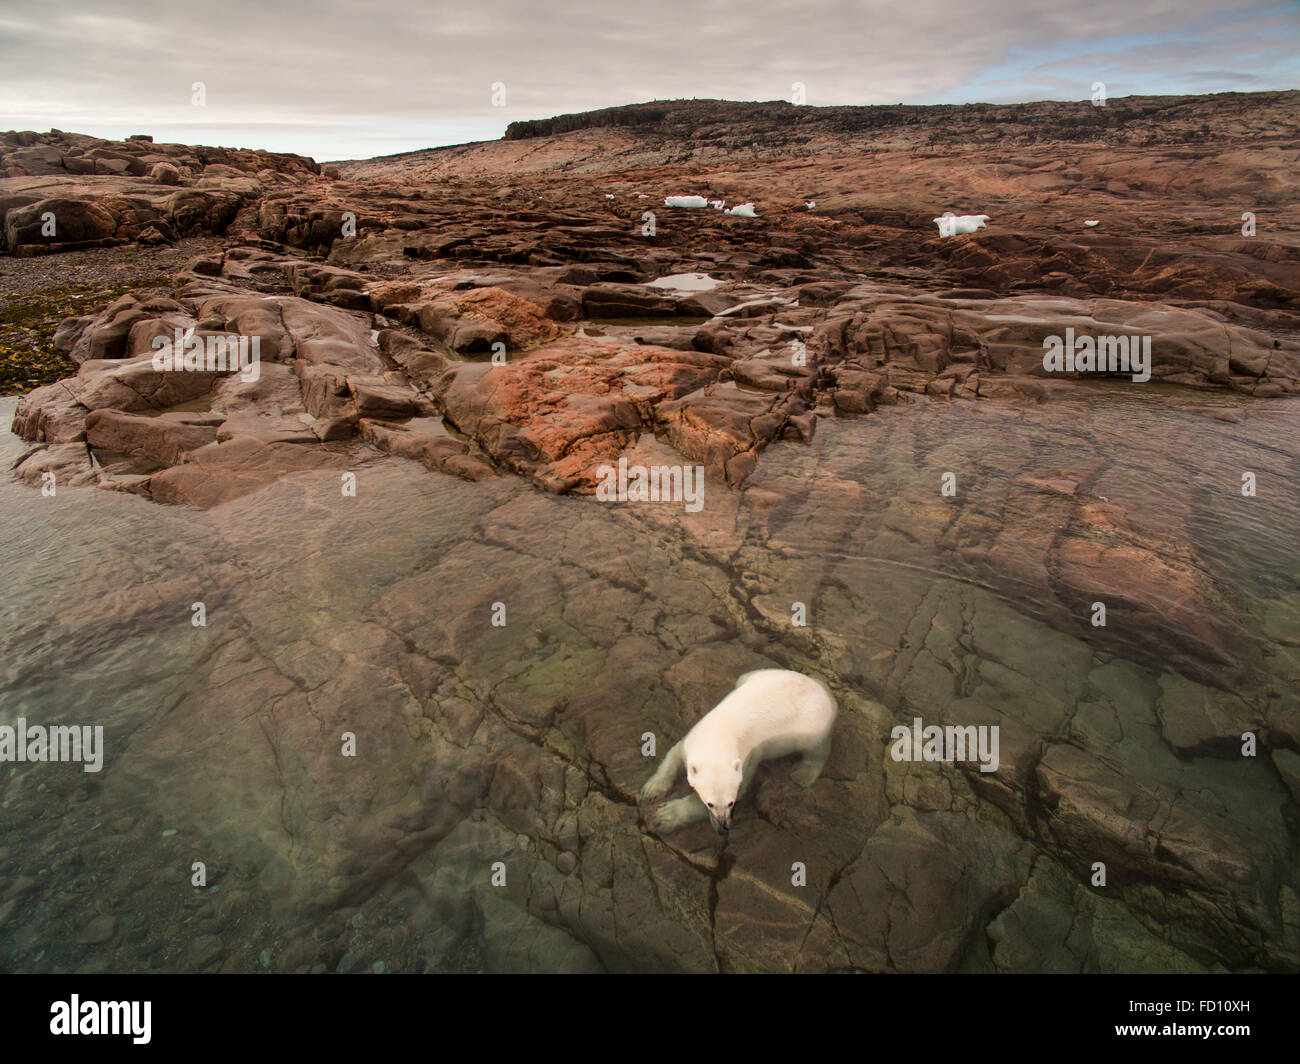 Canada, Nunavut Territory, Repulse Bay, Aerial view of Polar Bear (Ursus maritimus) cooling off along shoreline - Stock Image